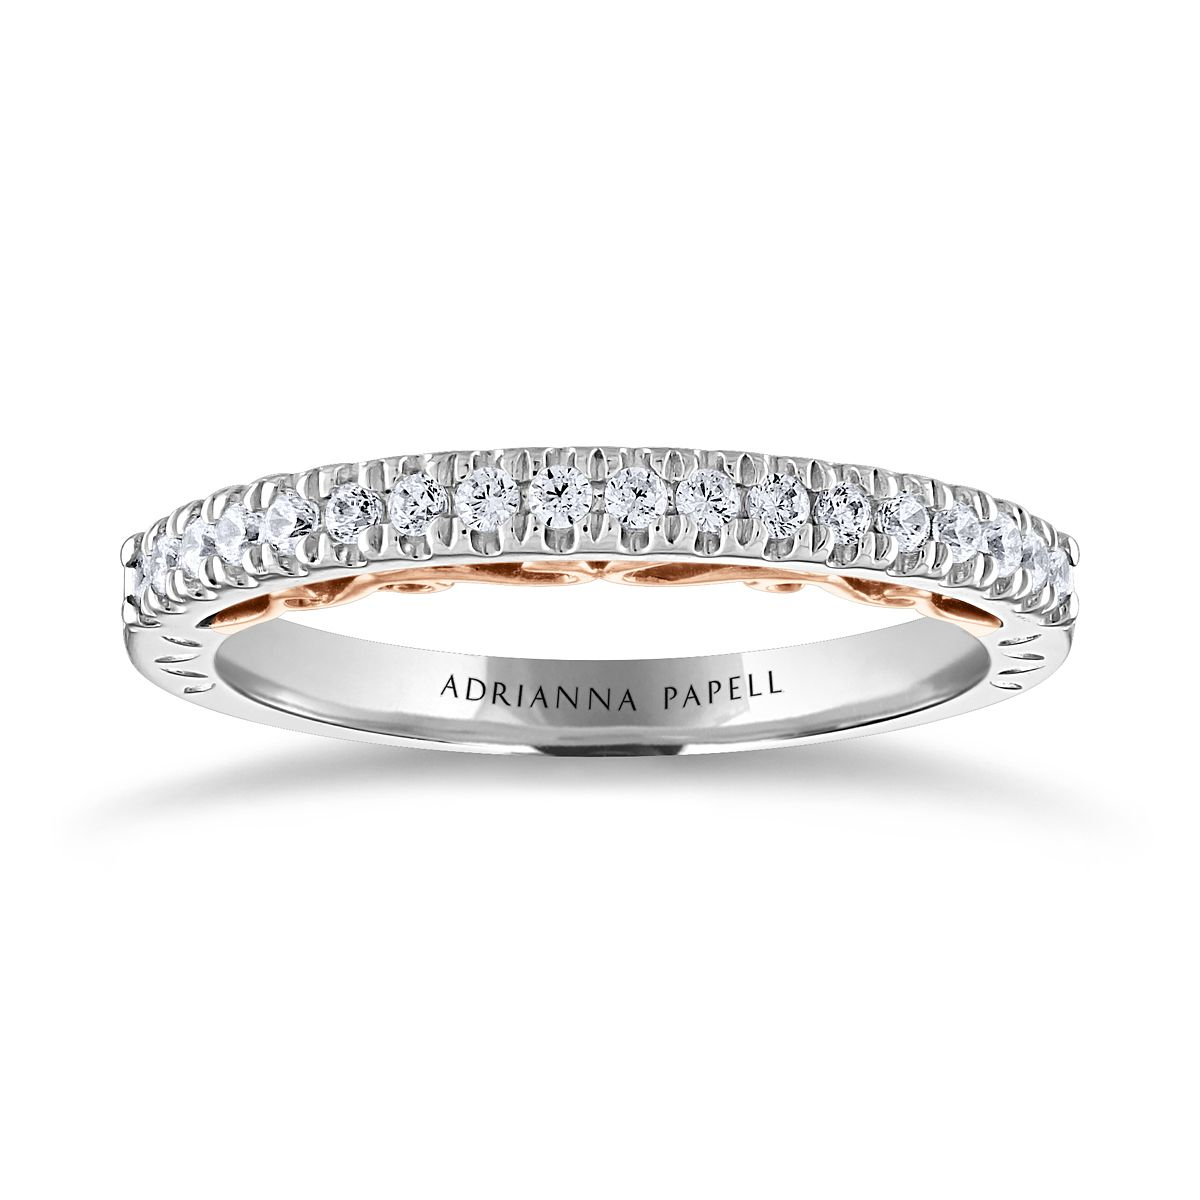 Adrianna Papell 14ct White & Rose Gold 0.25ct Diamond Band - Product number 2250187